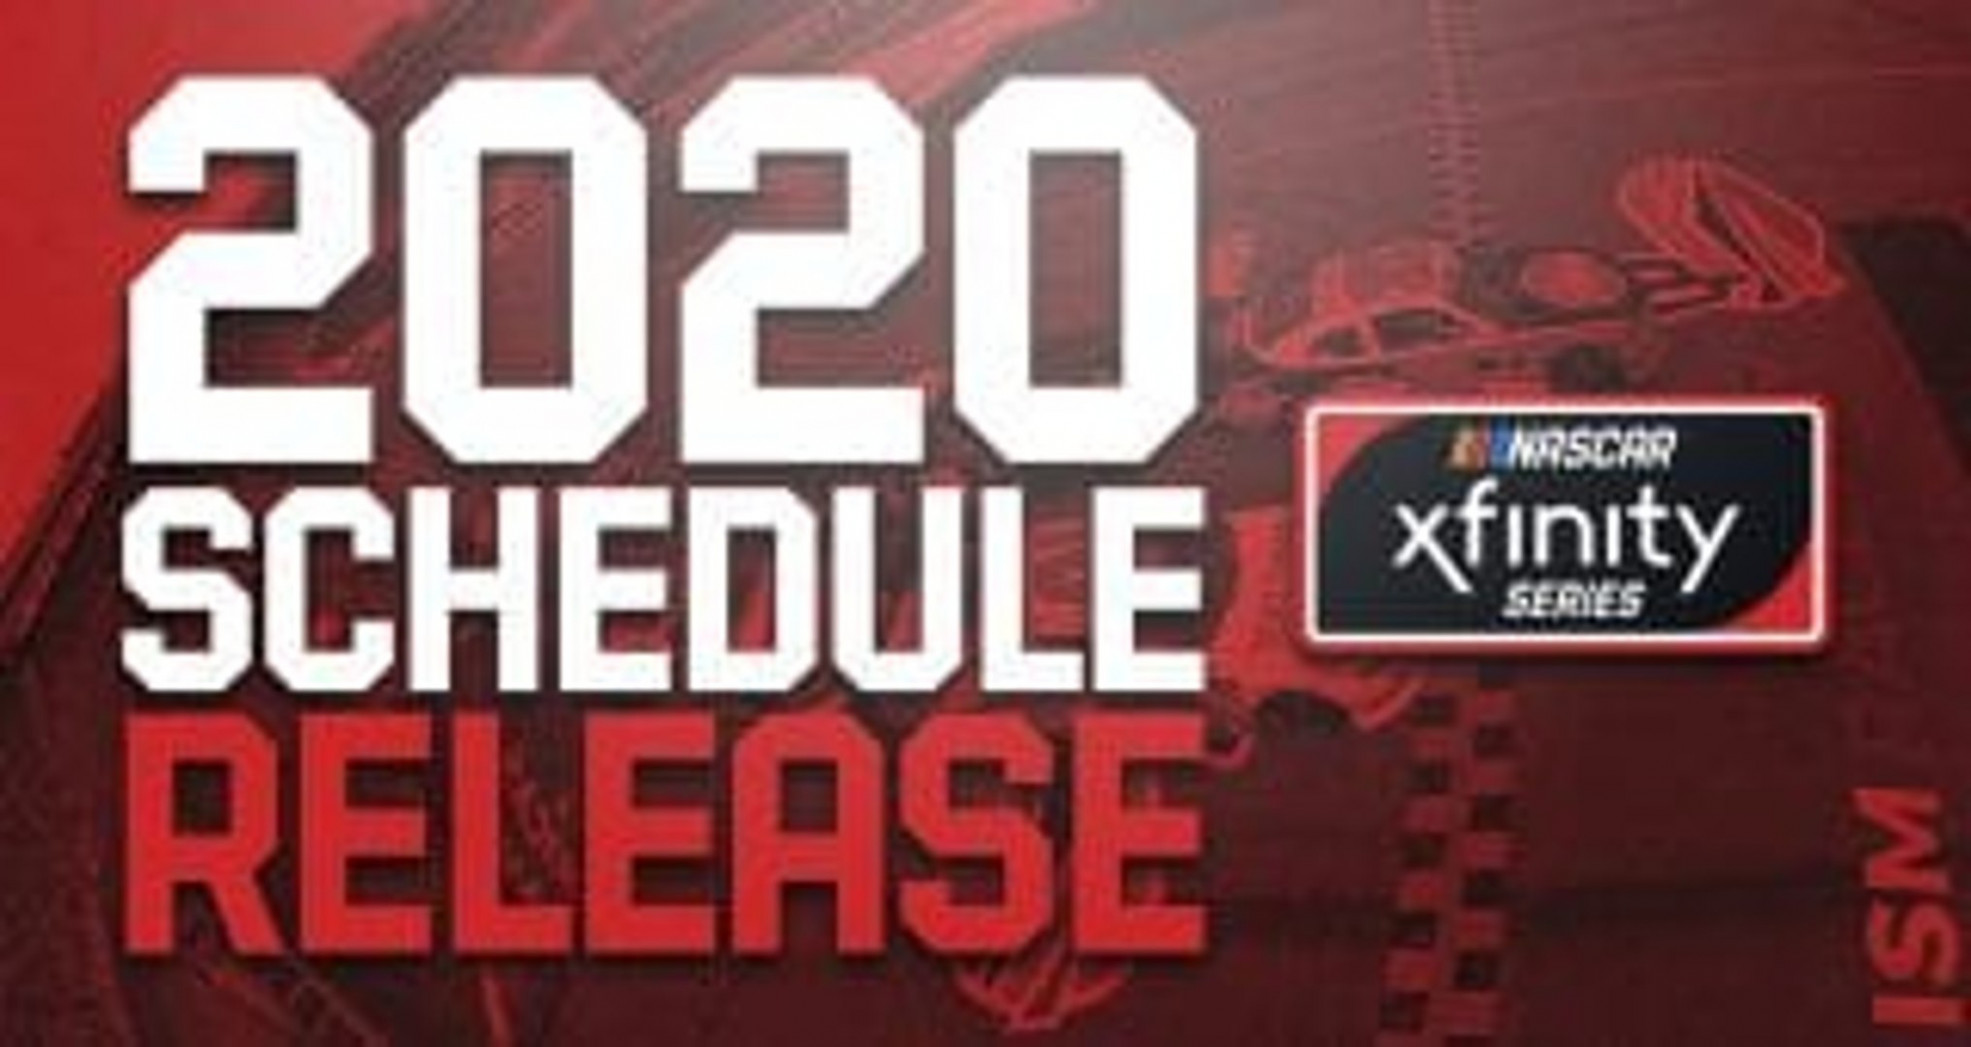 7 Xfinity Series schedule unveiled